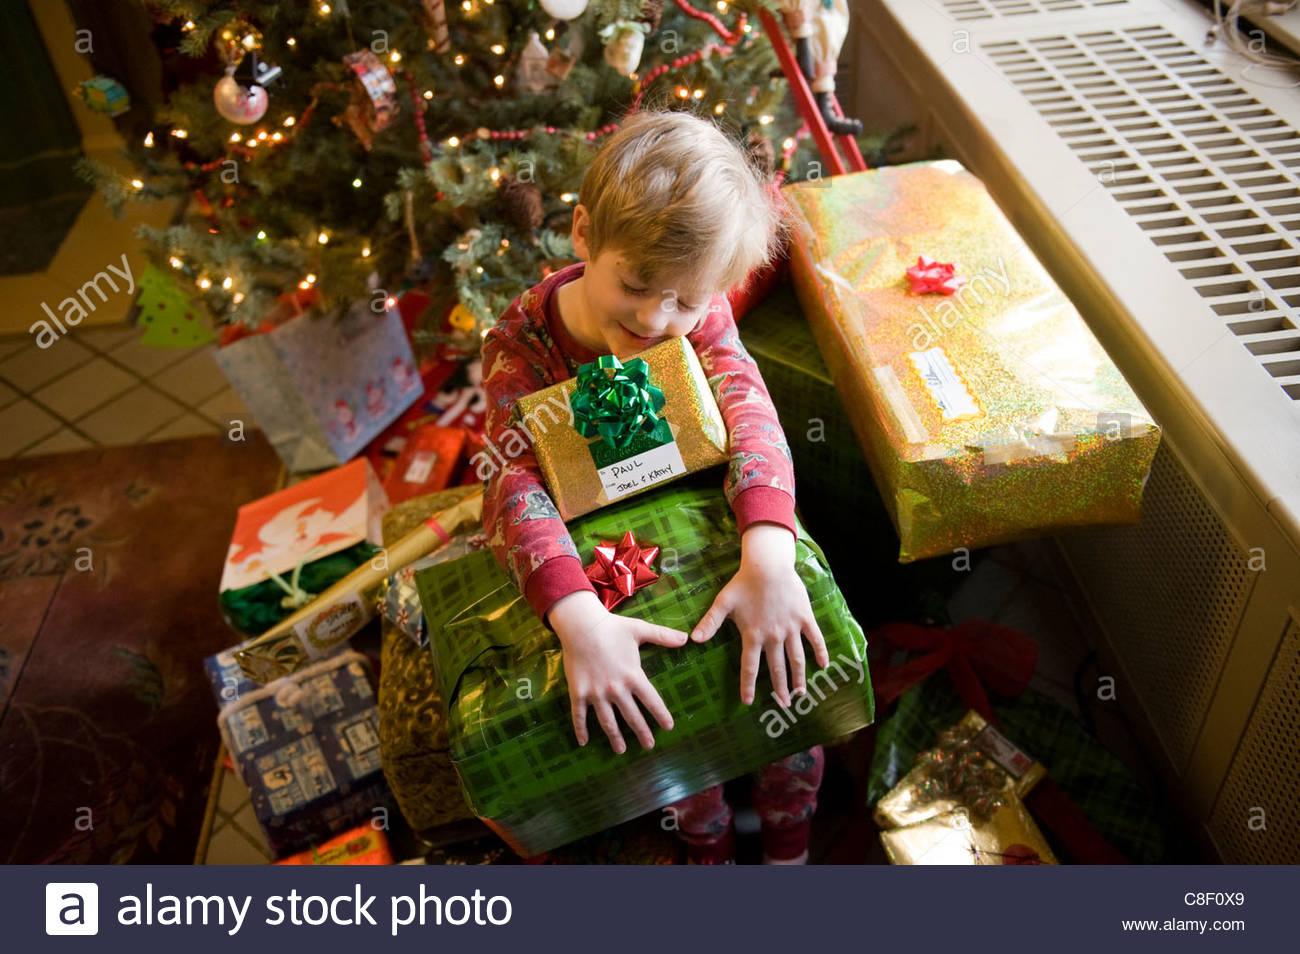 A 5-year-old boy with his Christmas presents in Lincoln, Nebraska. Nebraska